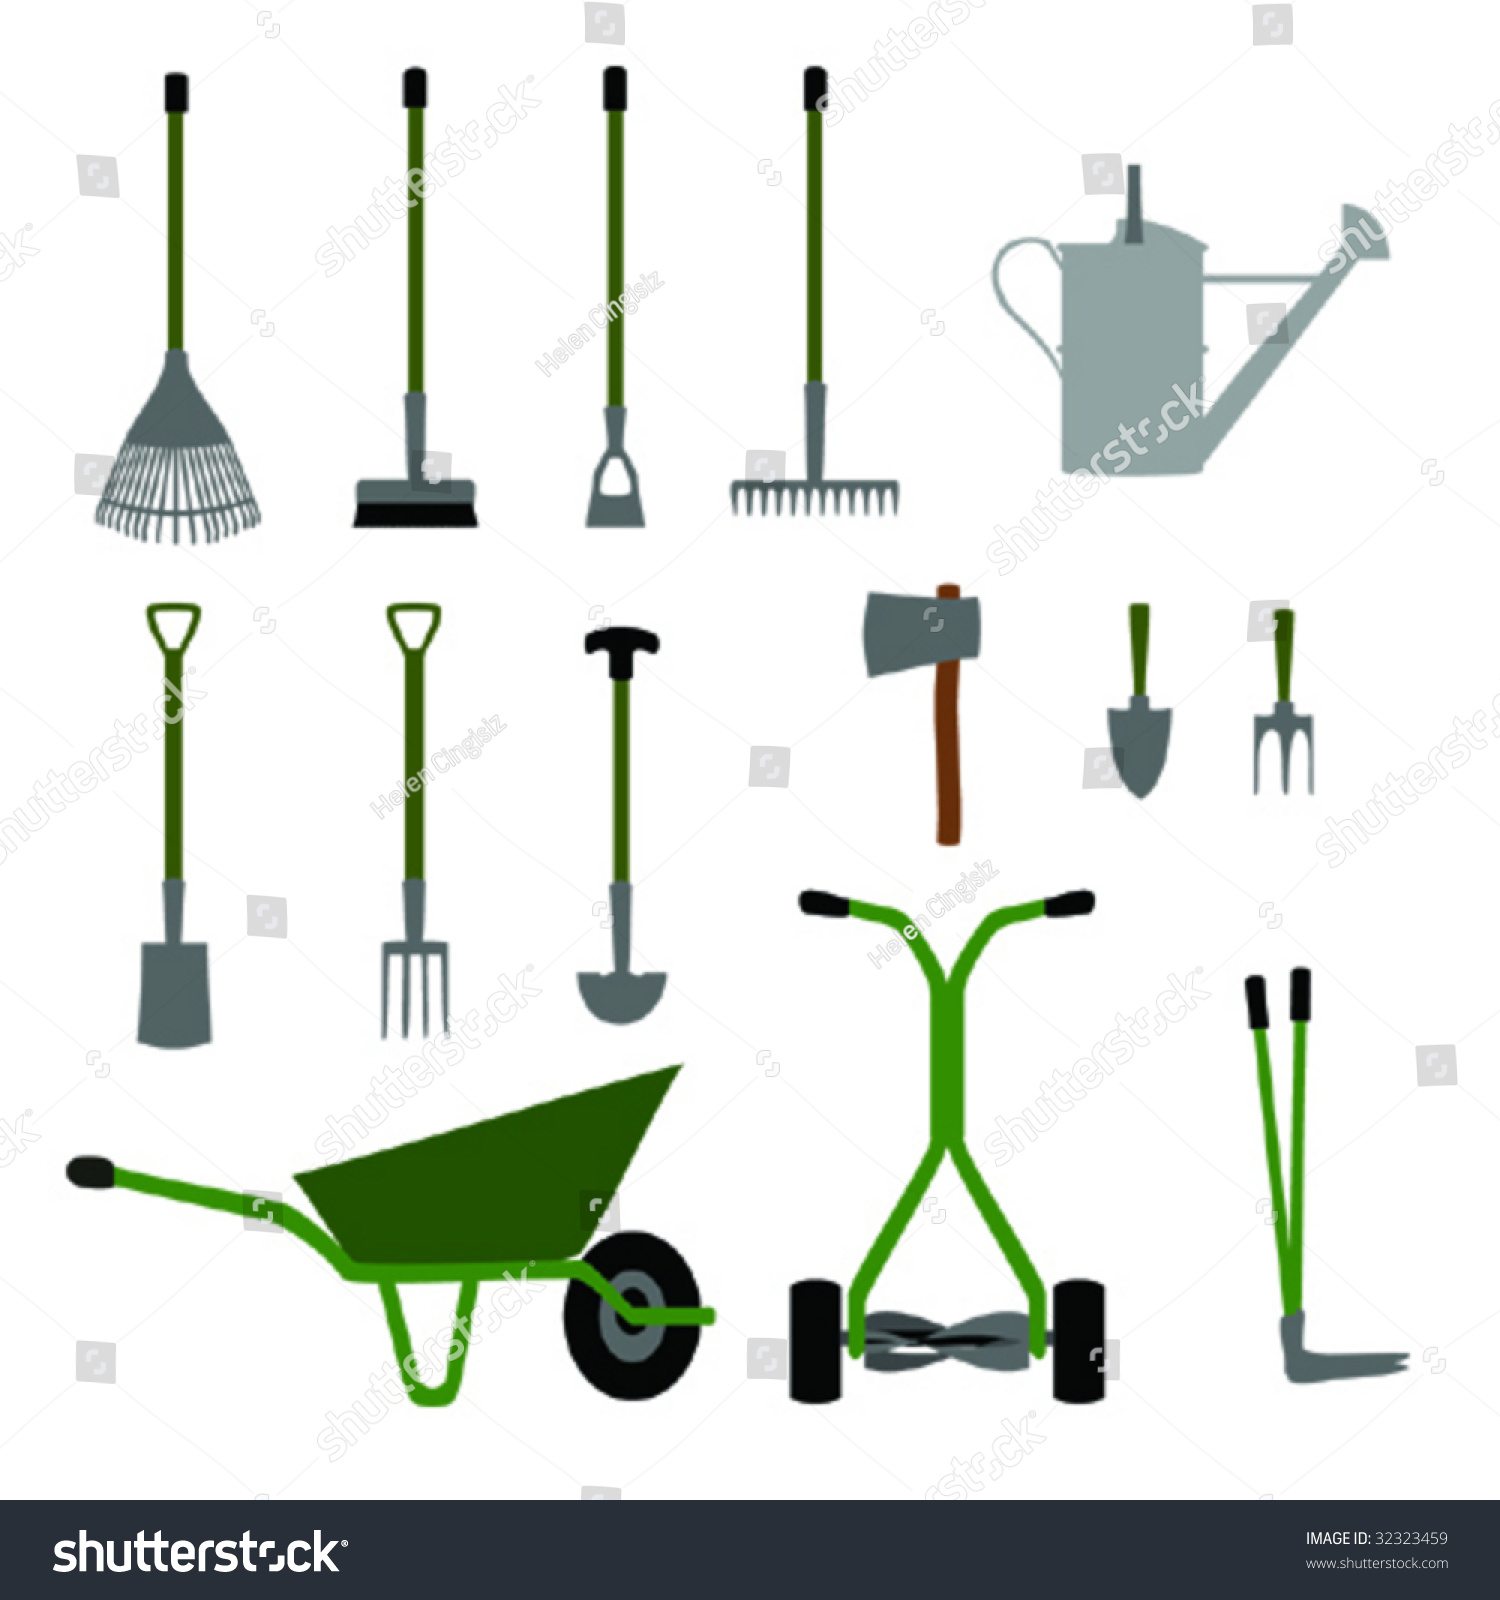 Gardening tools and equipment set no 1 stock vector for Tools and equipment in planting